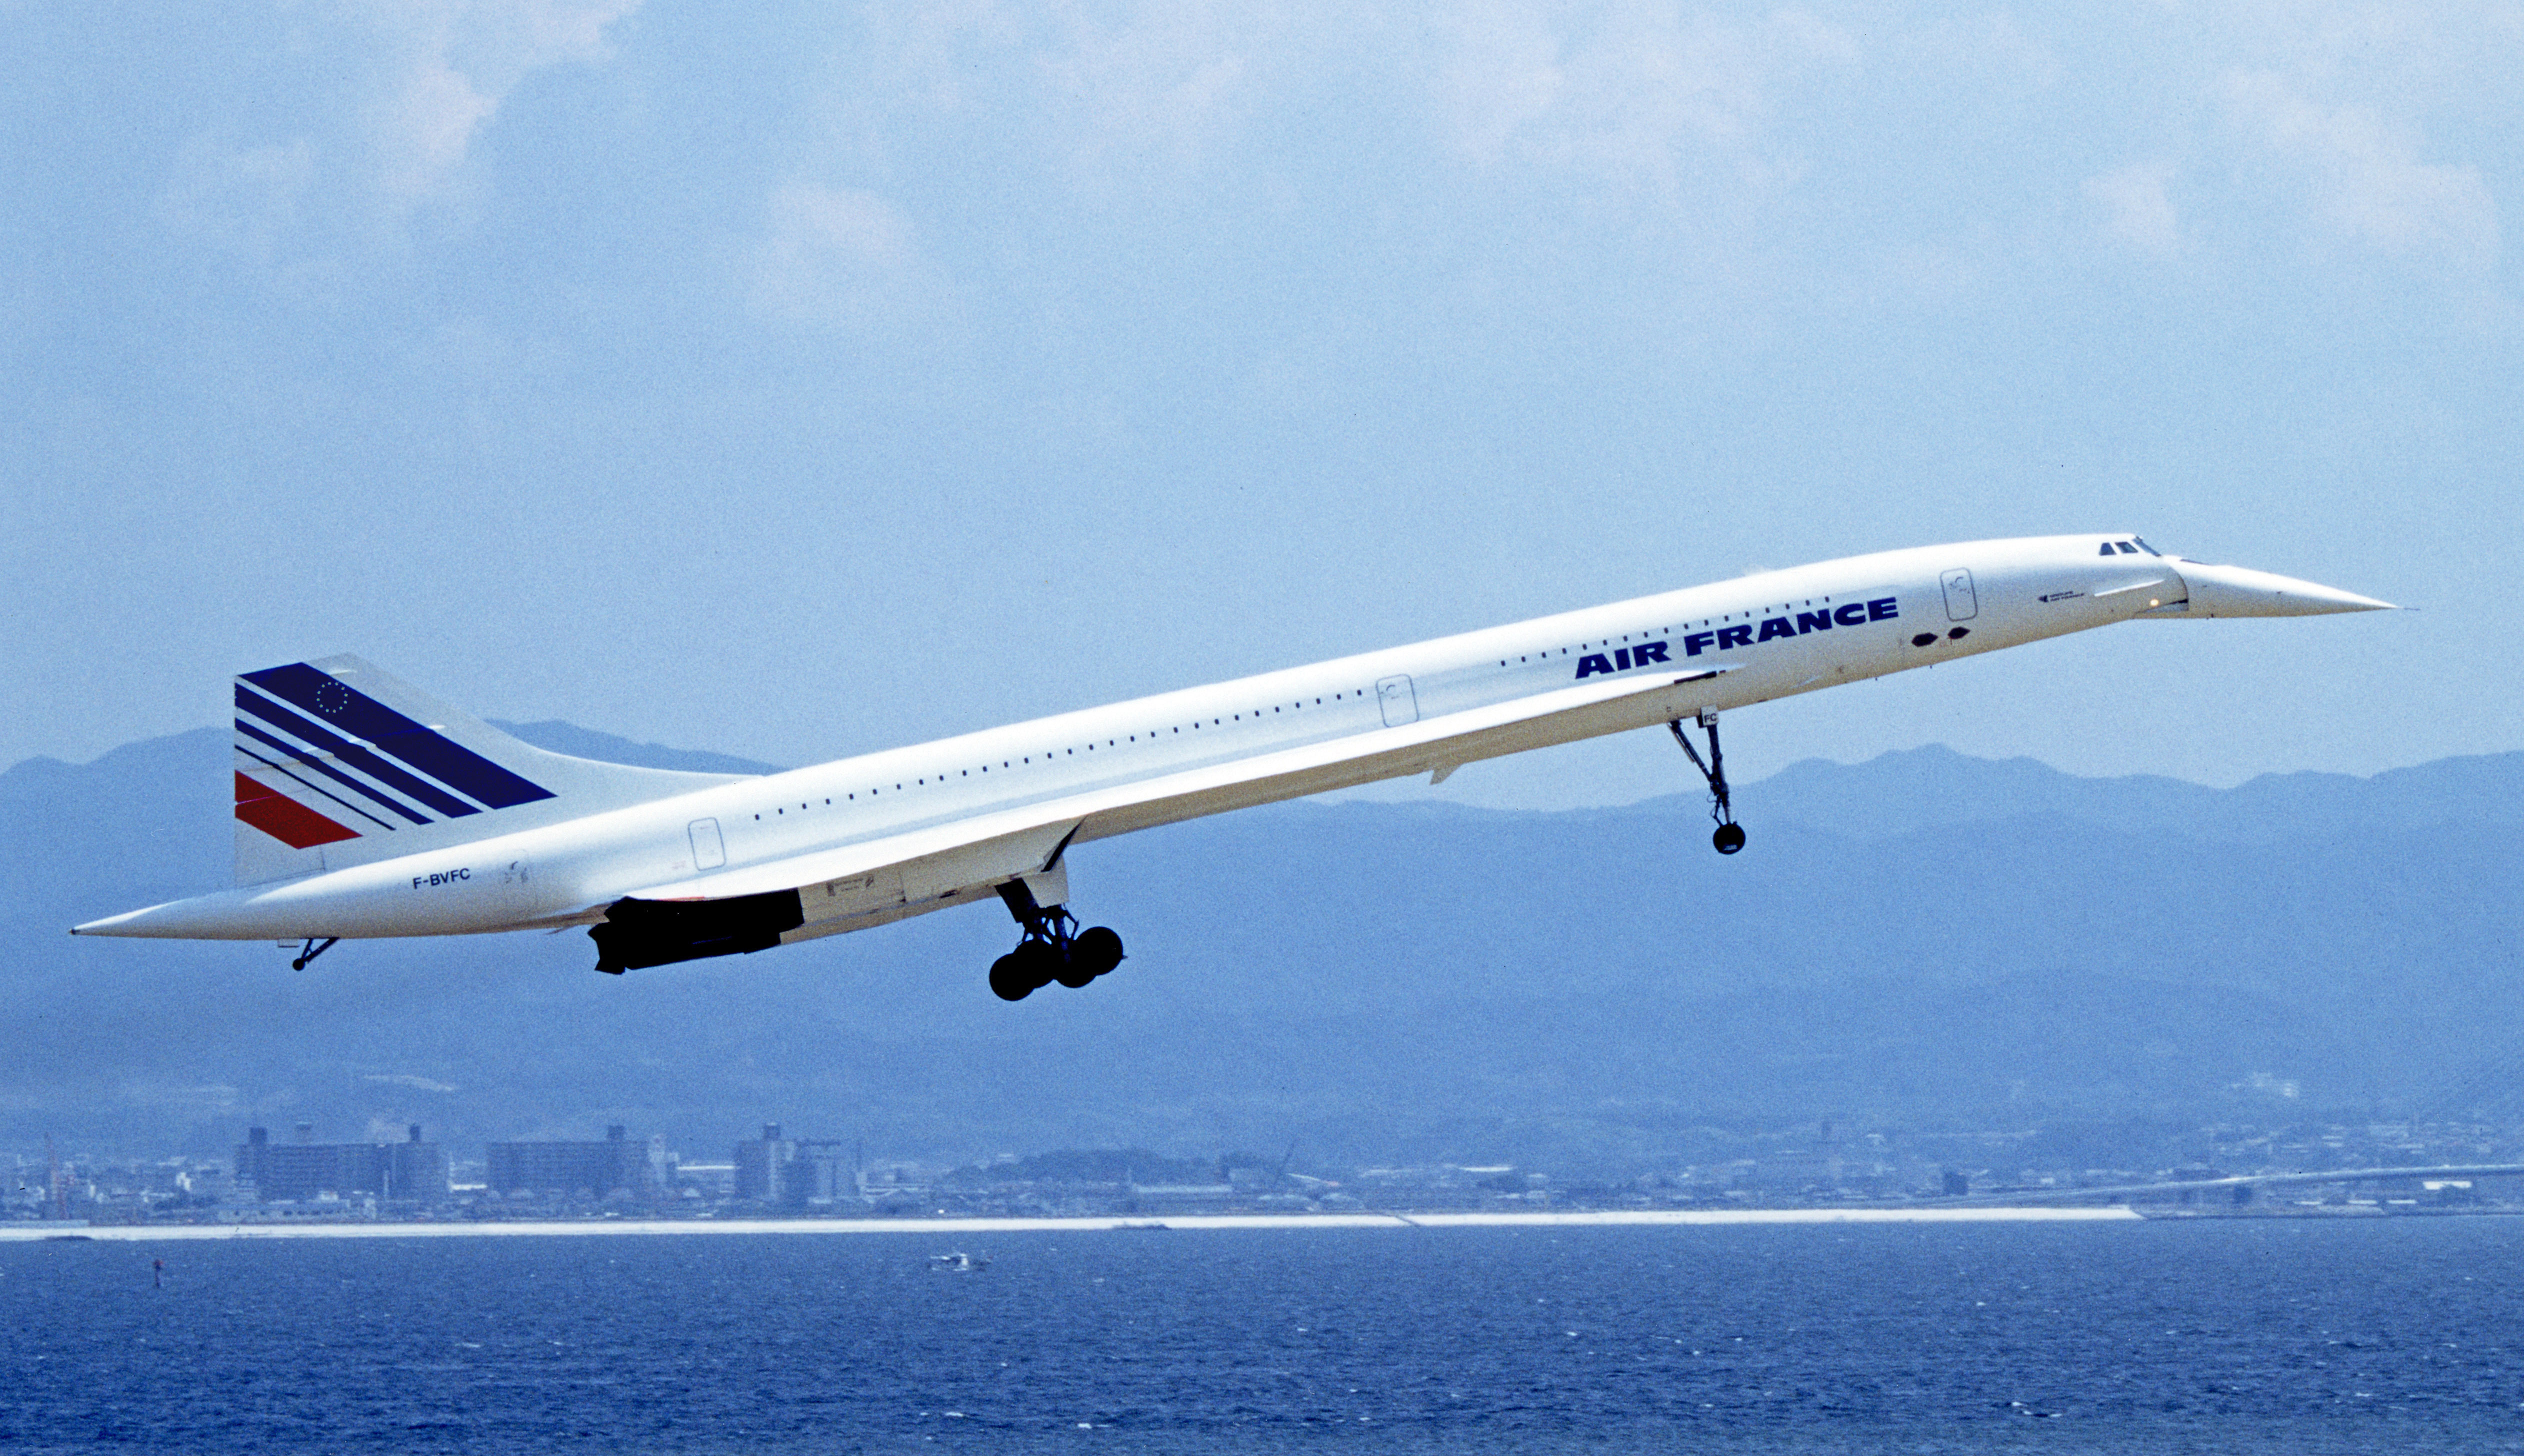 Concorde taking off from Kansai International Airport in 1994; image Spaceaero2